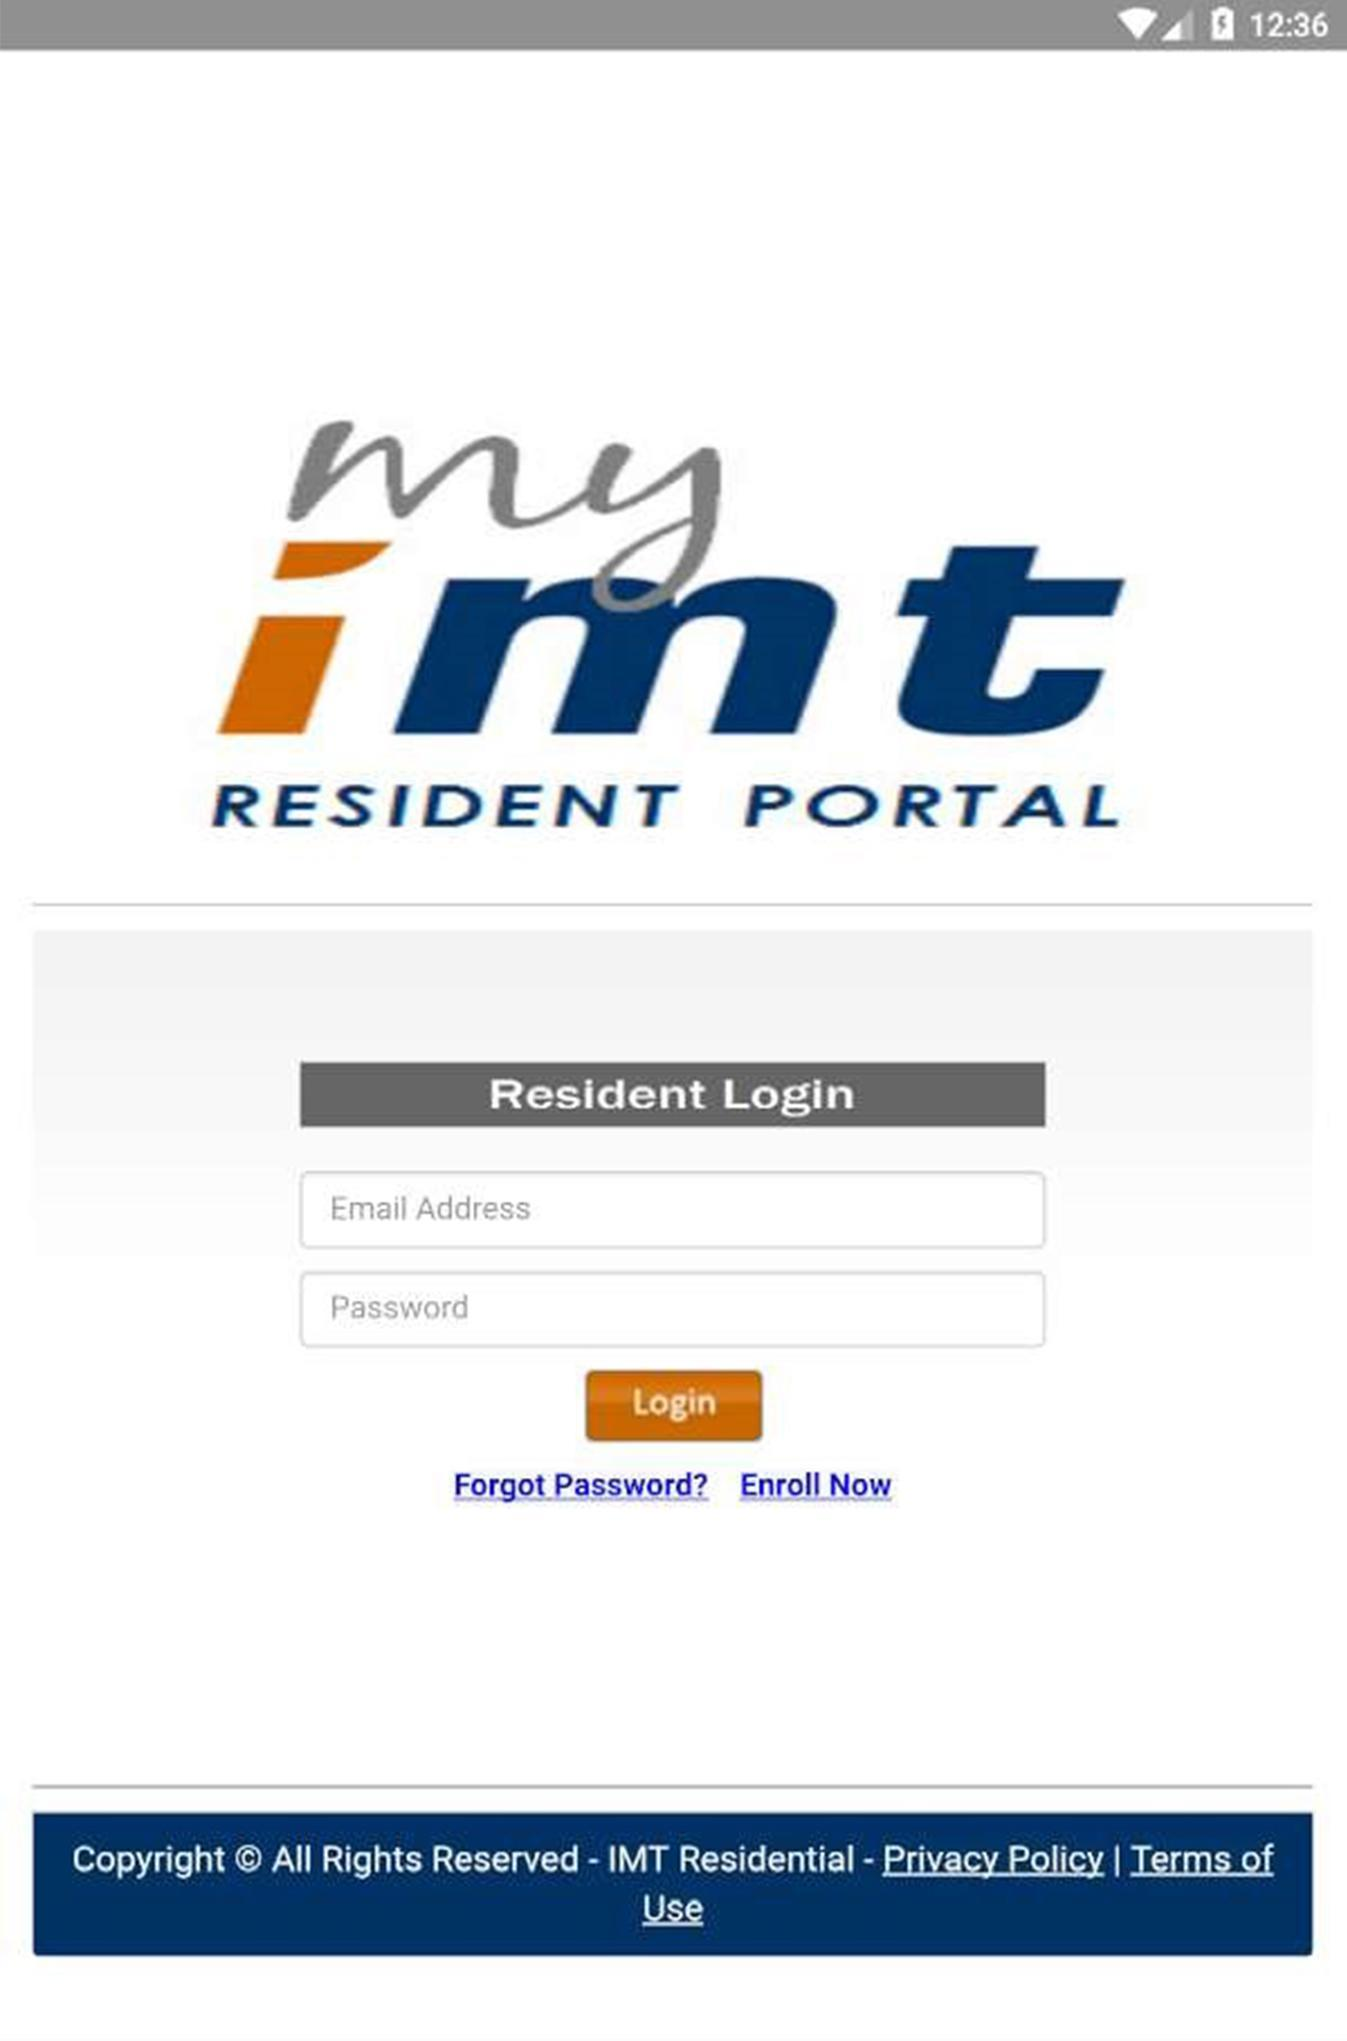 IMT Residential for Android - APK Download